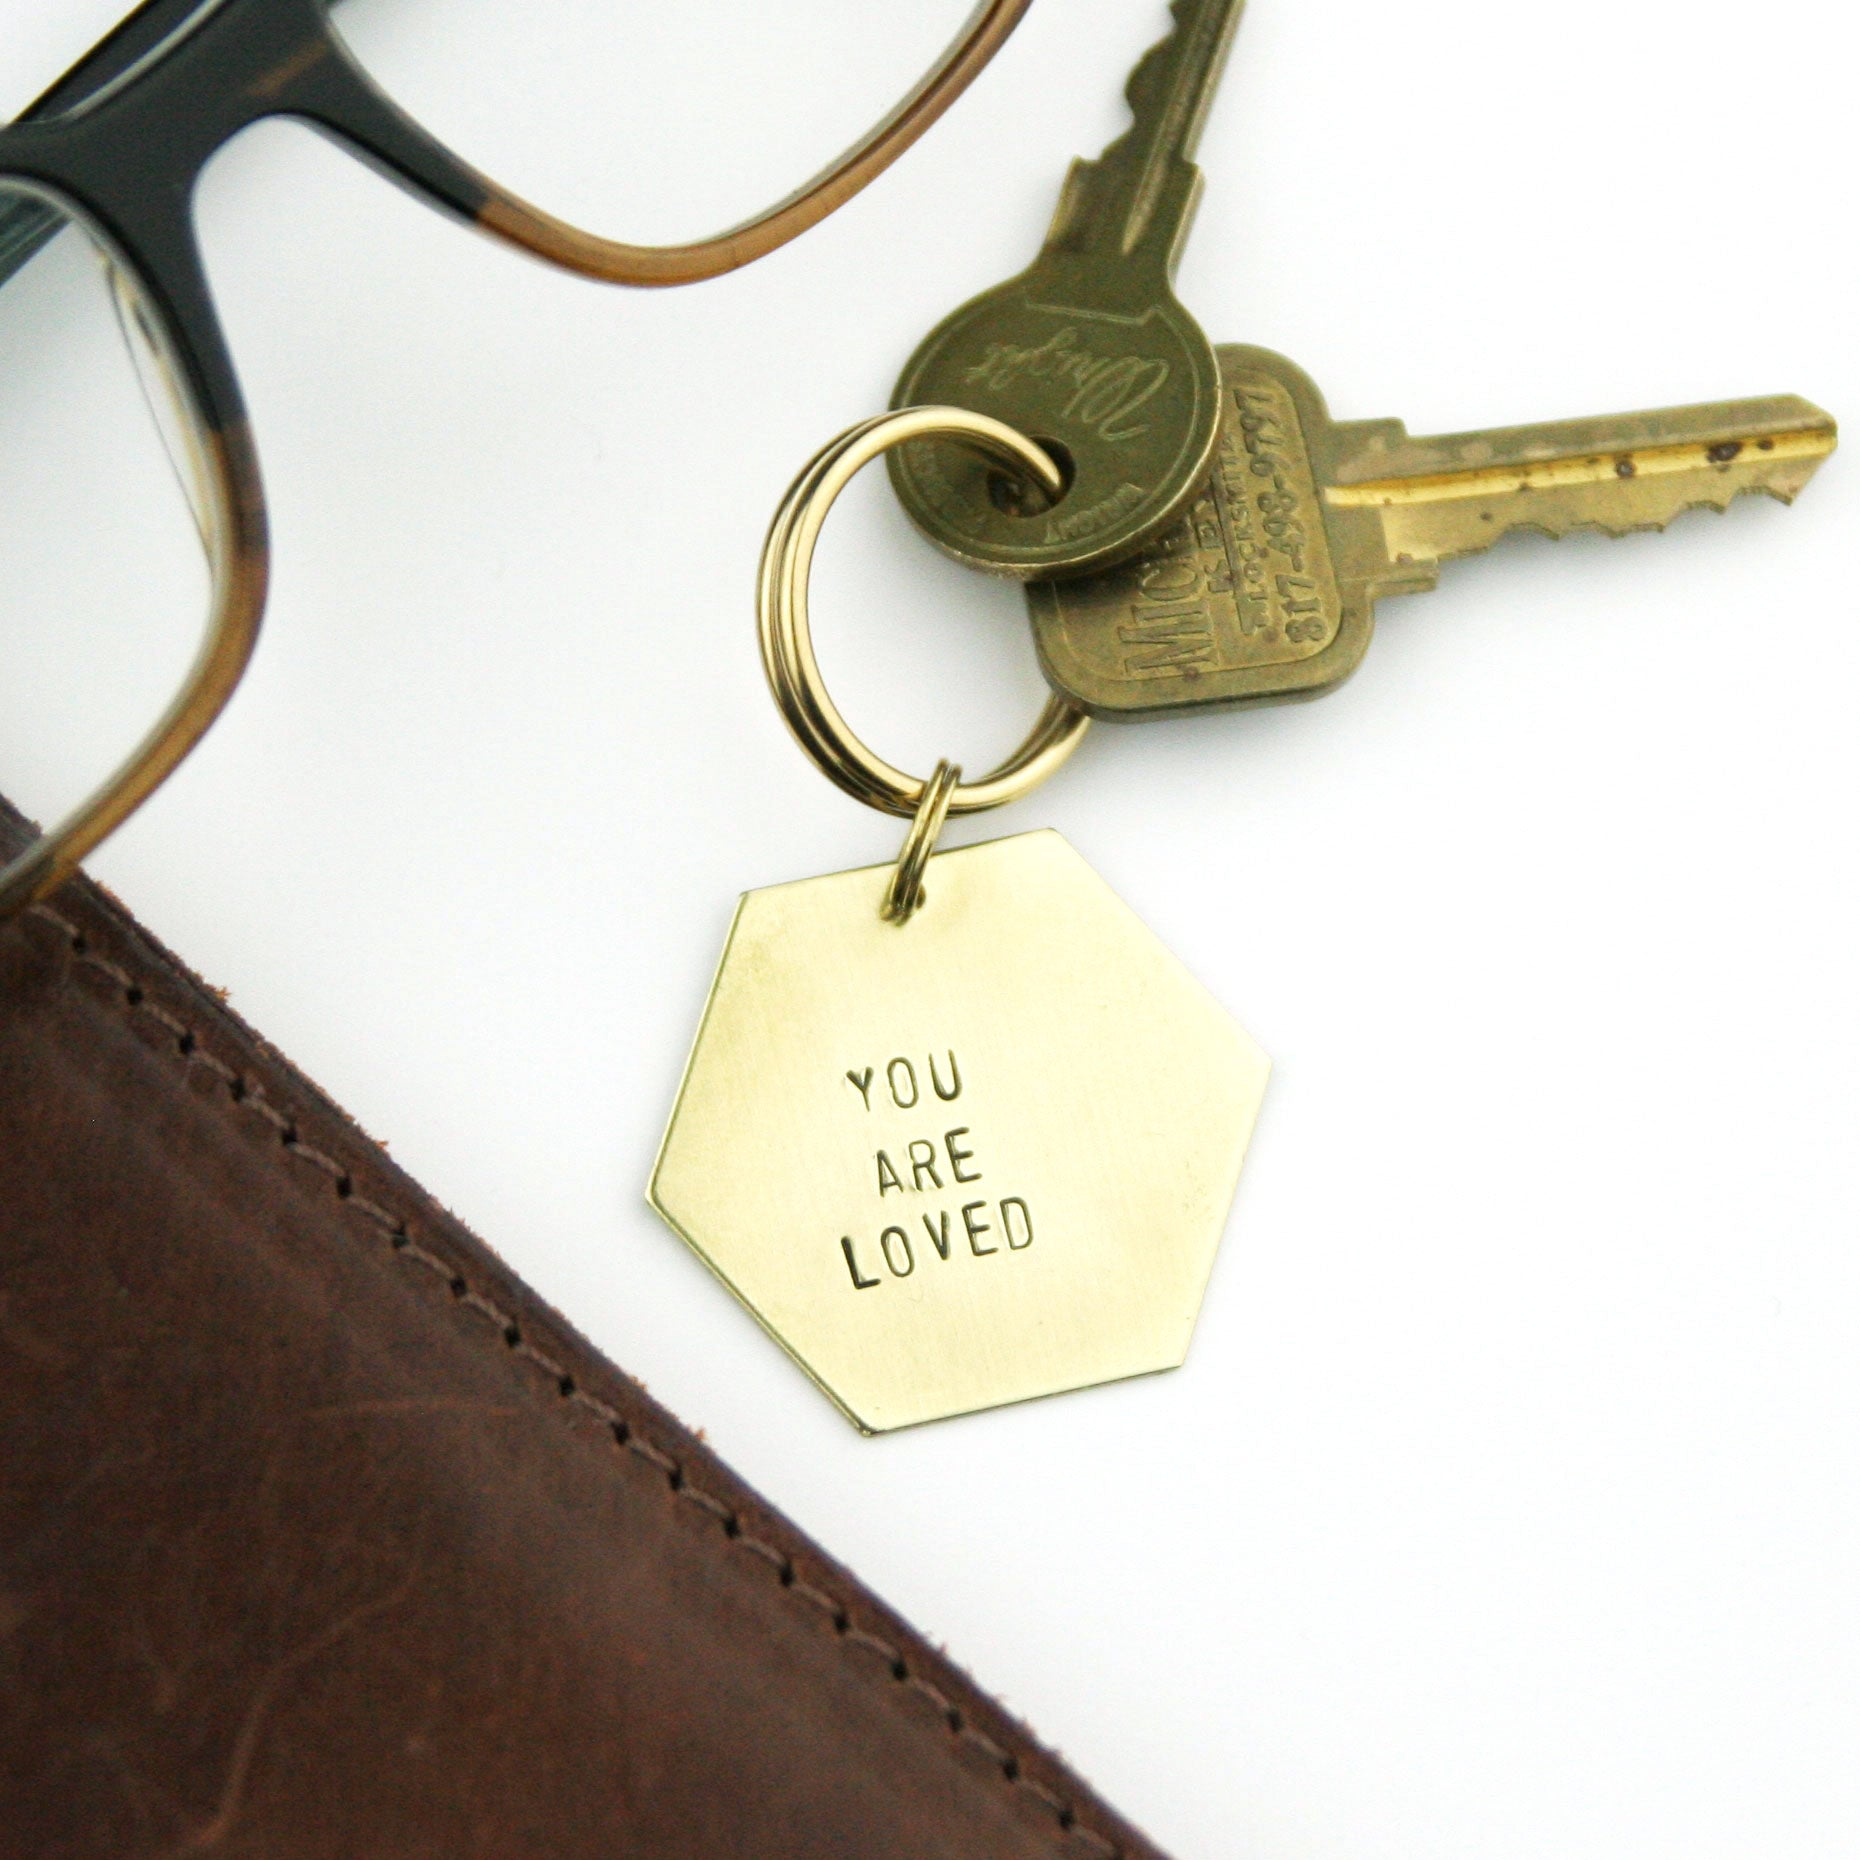 Peachtree Lane - You are Loved - Stamped Keychain